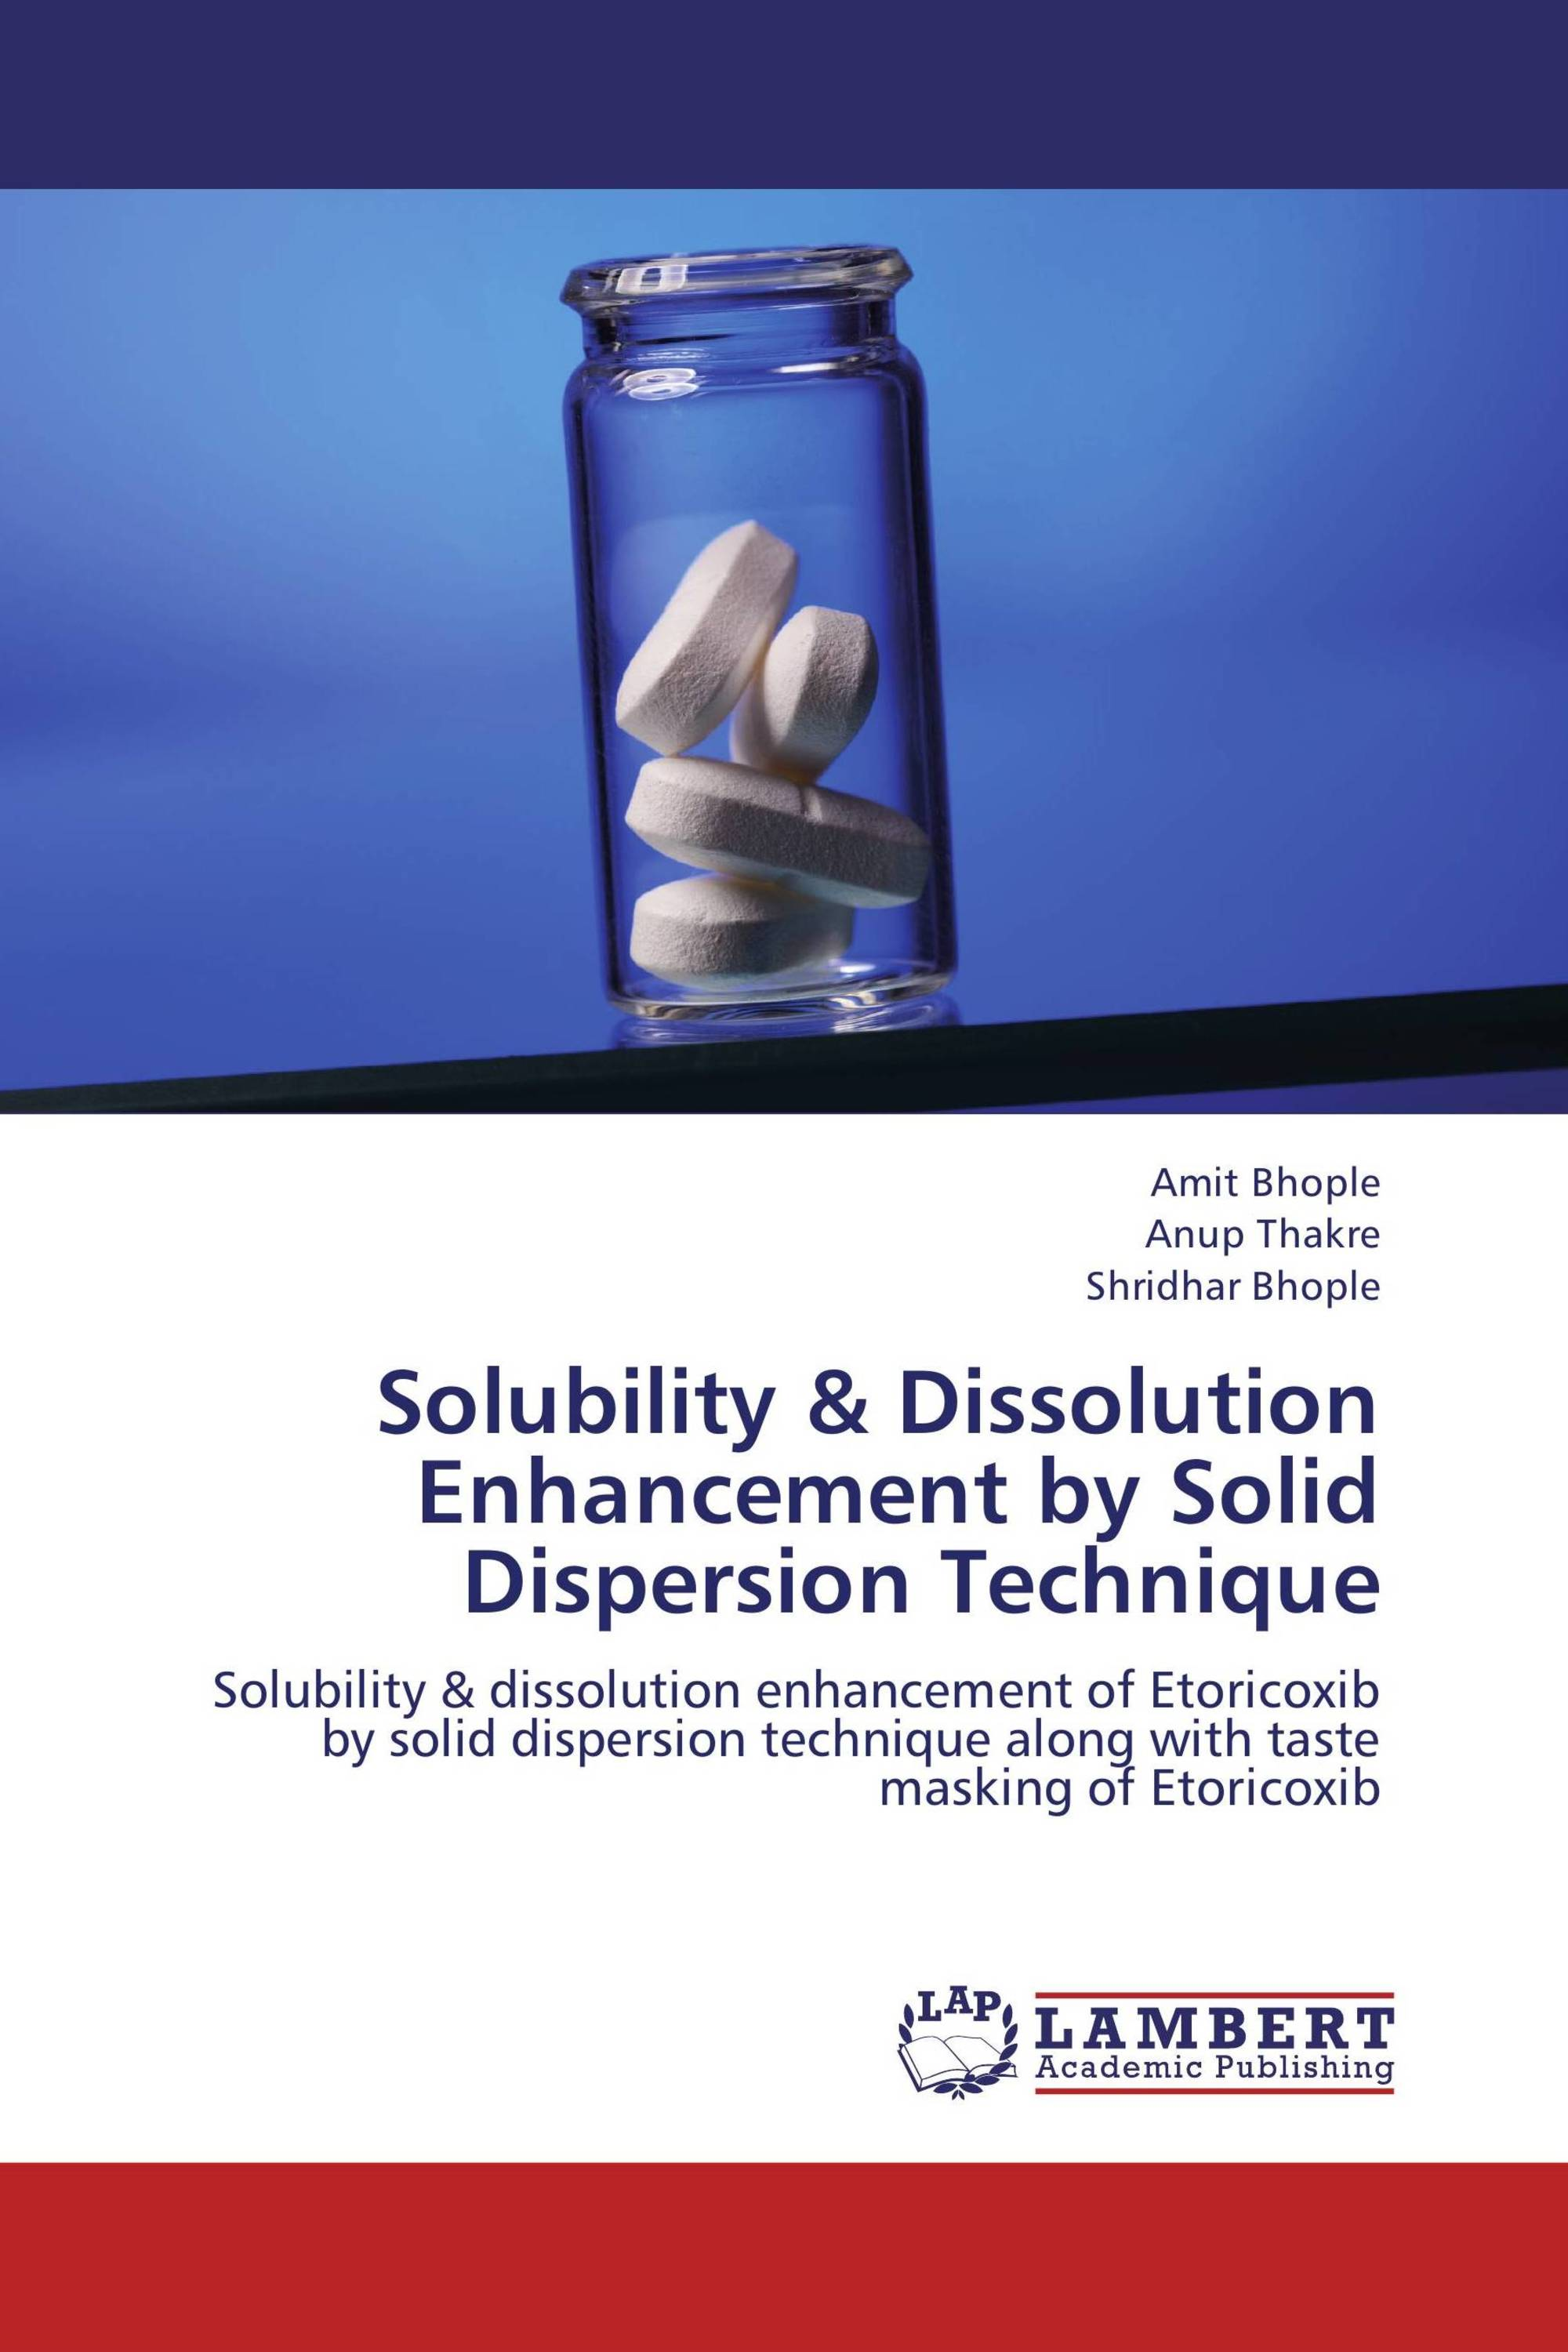 thesis on solid dispersions Solid dispersion as a dosage form has been established a superior option for the drugs having poor aqueous solubility solid dispersions in water-soluble carriers have engrossed.